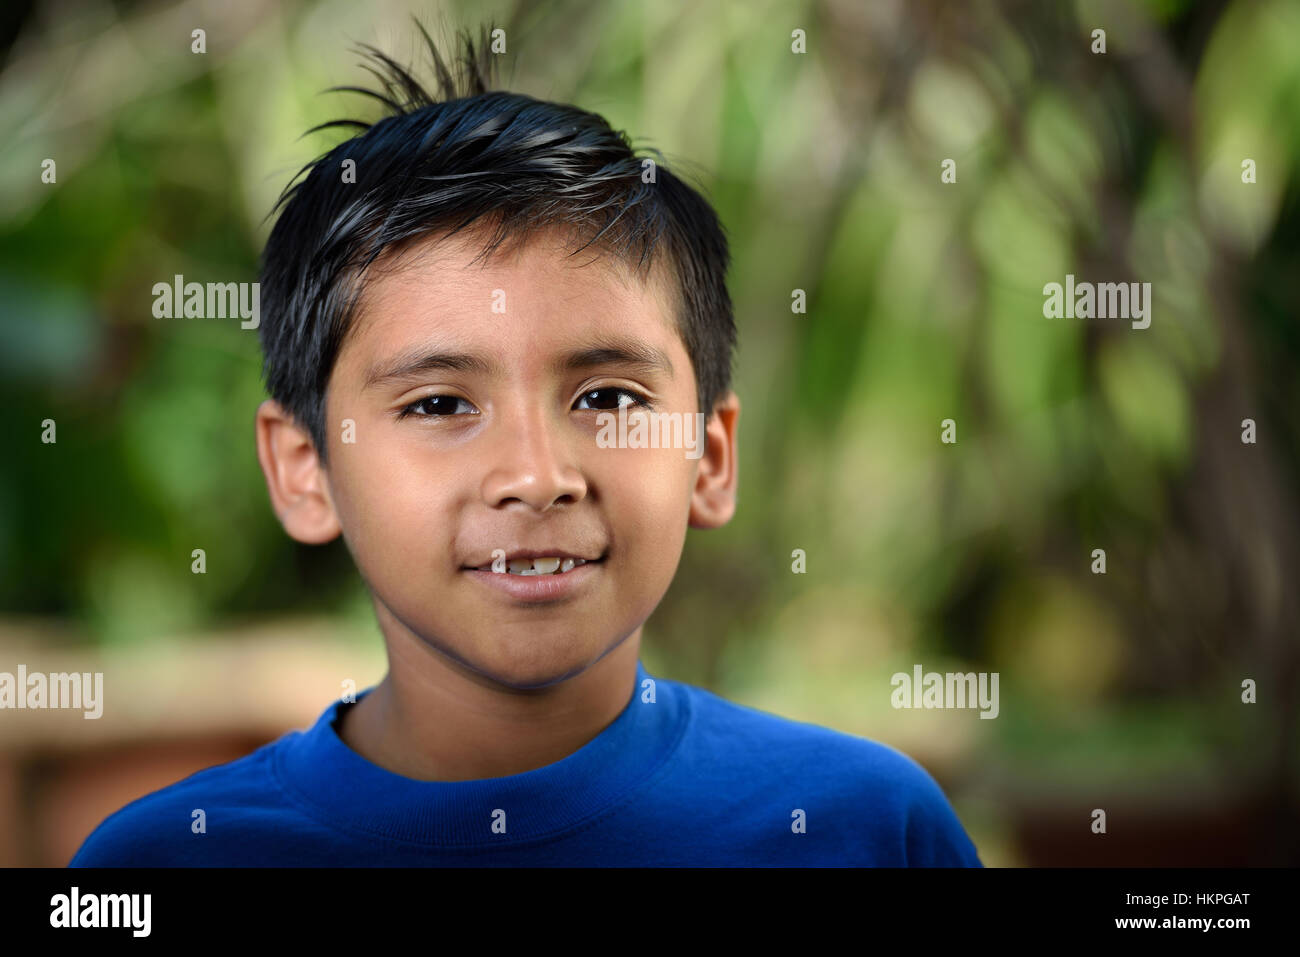 headshot of latino boy with smile in nature stock photo 132646832